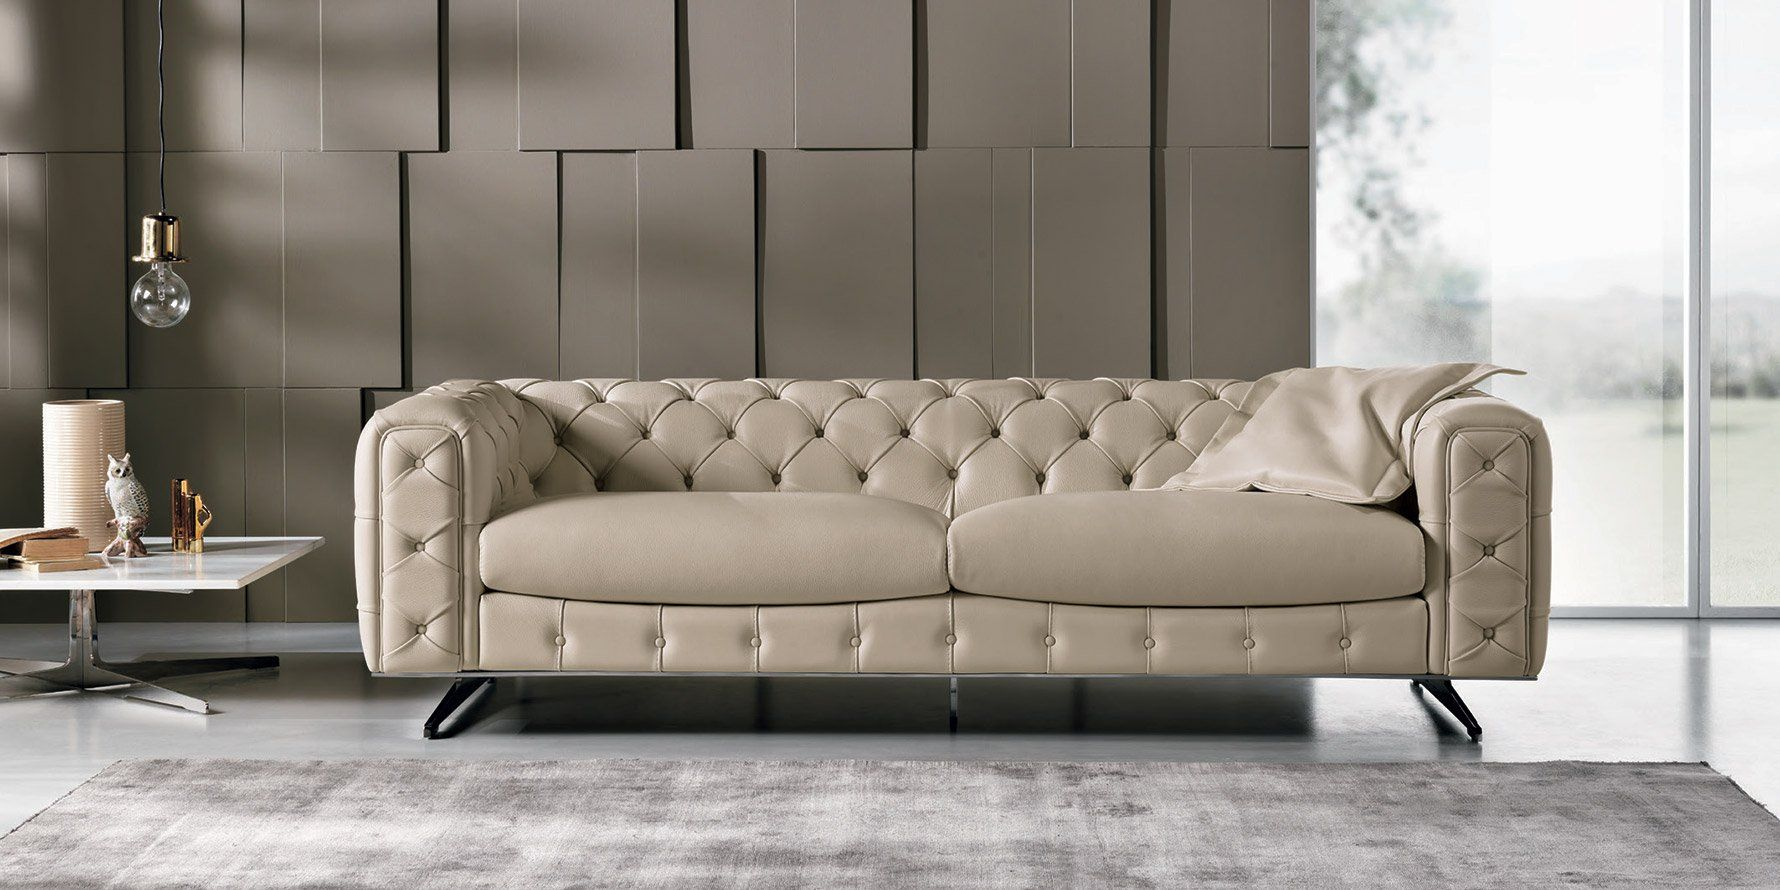 The ingrid sofa and loveseat from max divani italy tufted Sleek sofa set designs